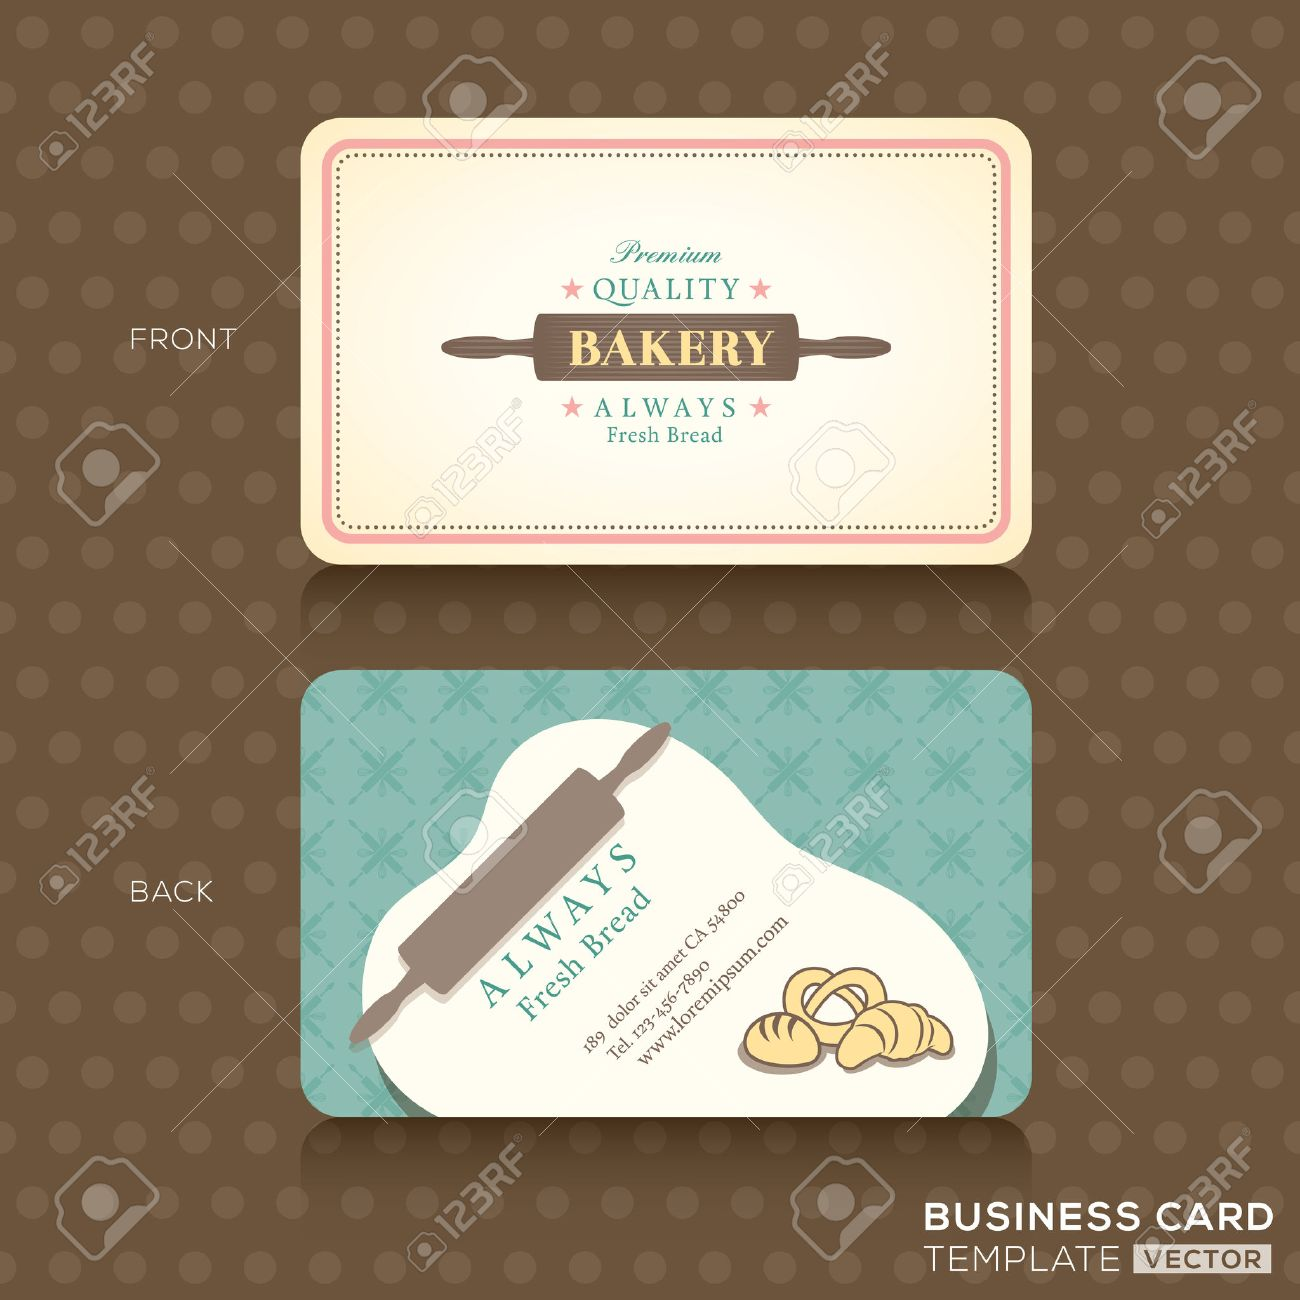 Business Card Design Html Images - Card Design And Card Template